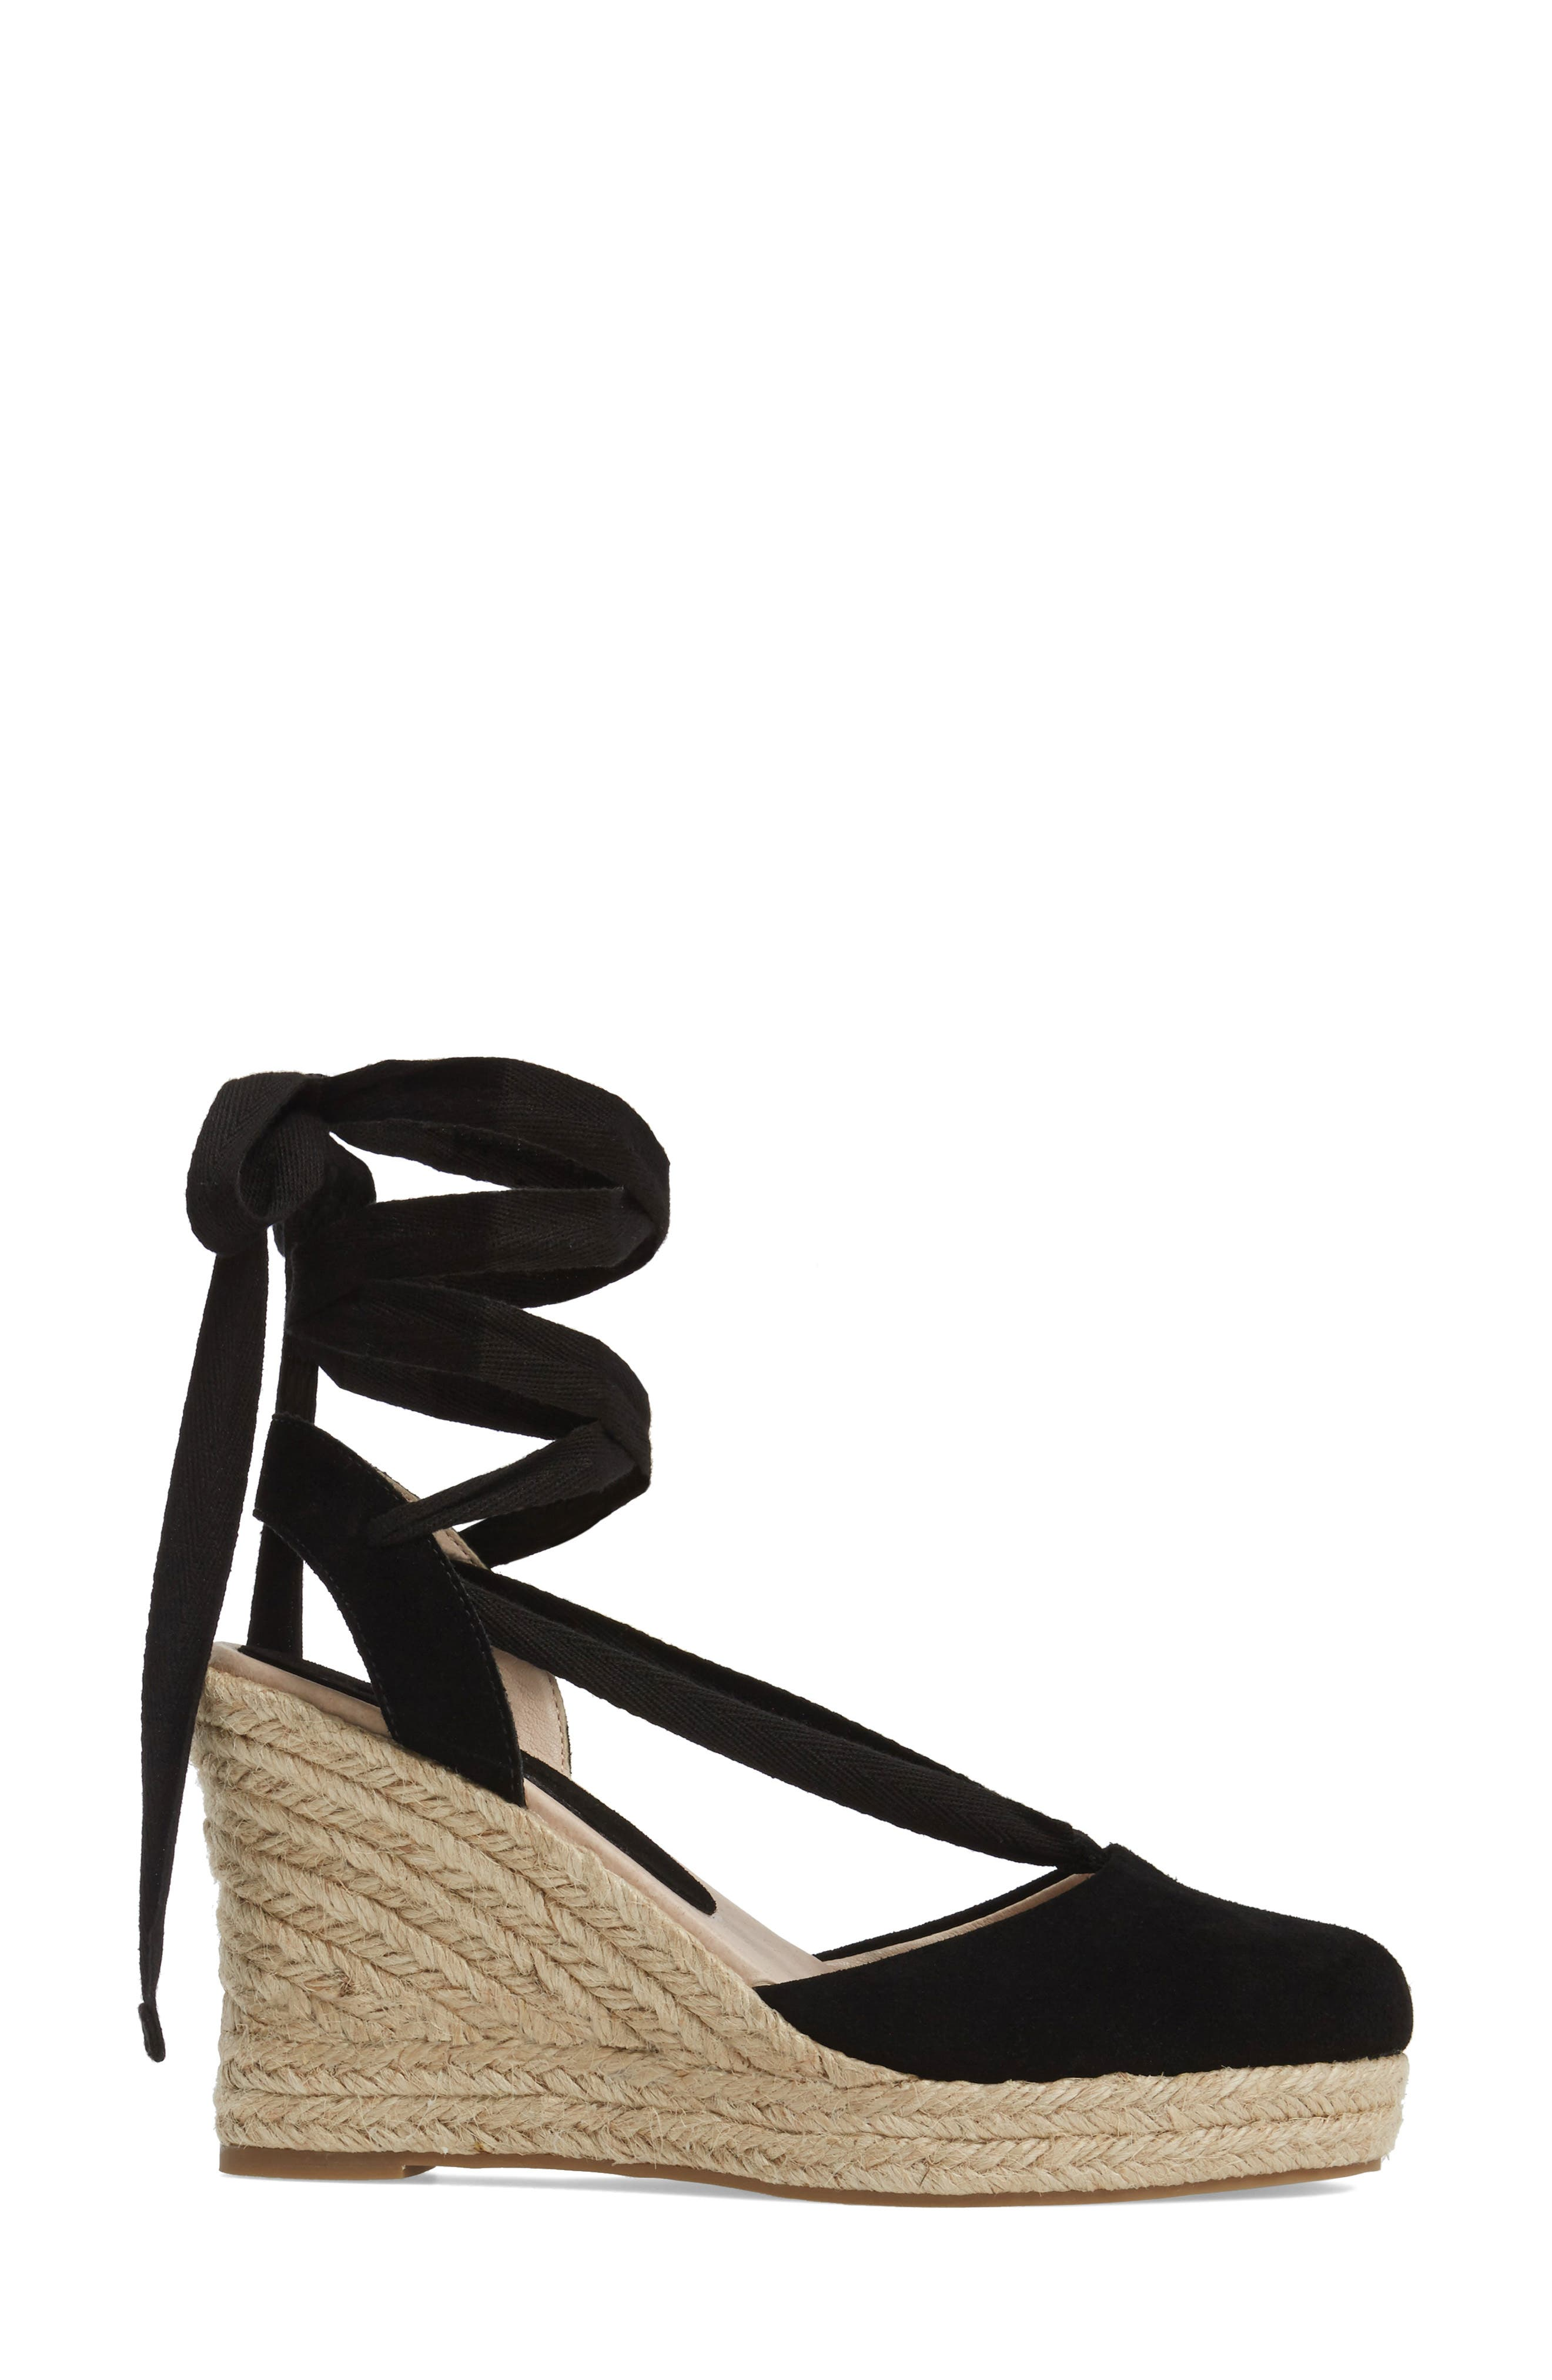 TOPSHOP, Waves Espadrille Wedge, Alternate thumbnail 3, color, 001